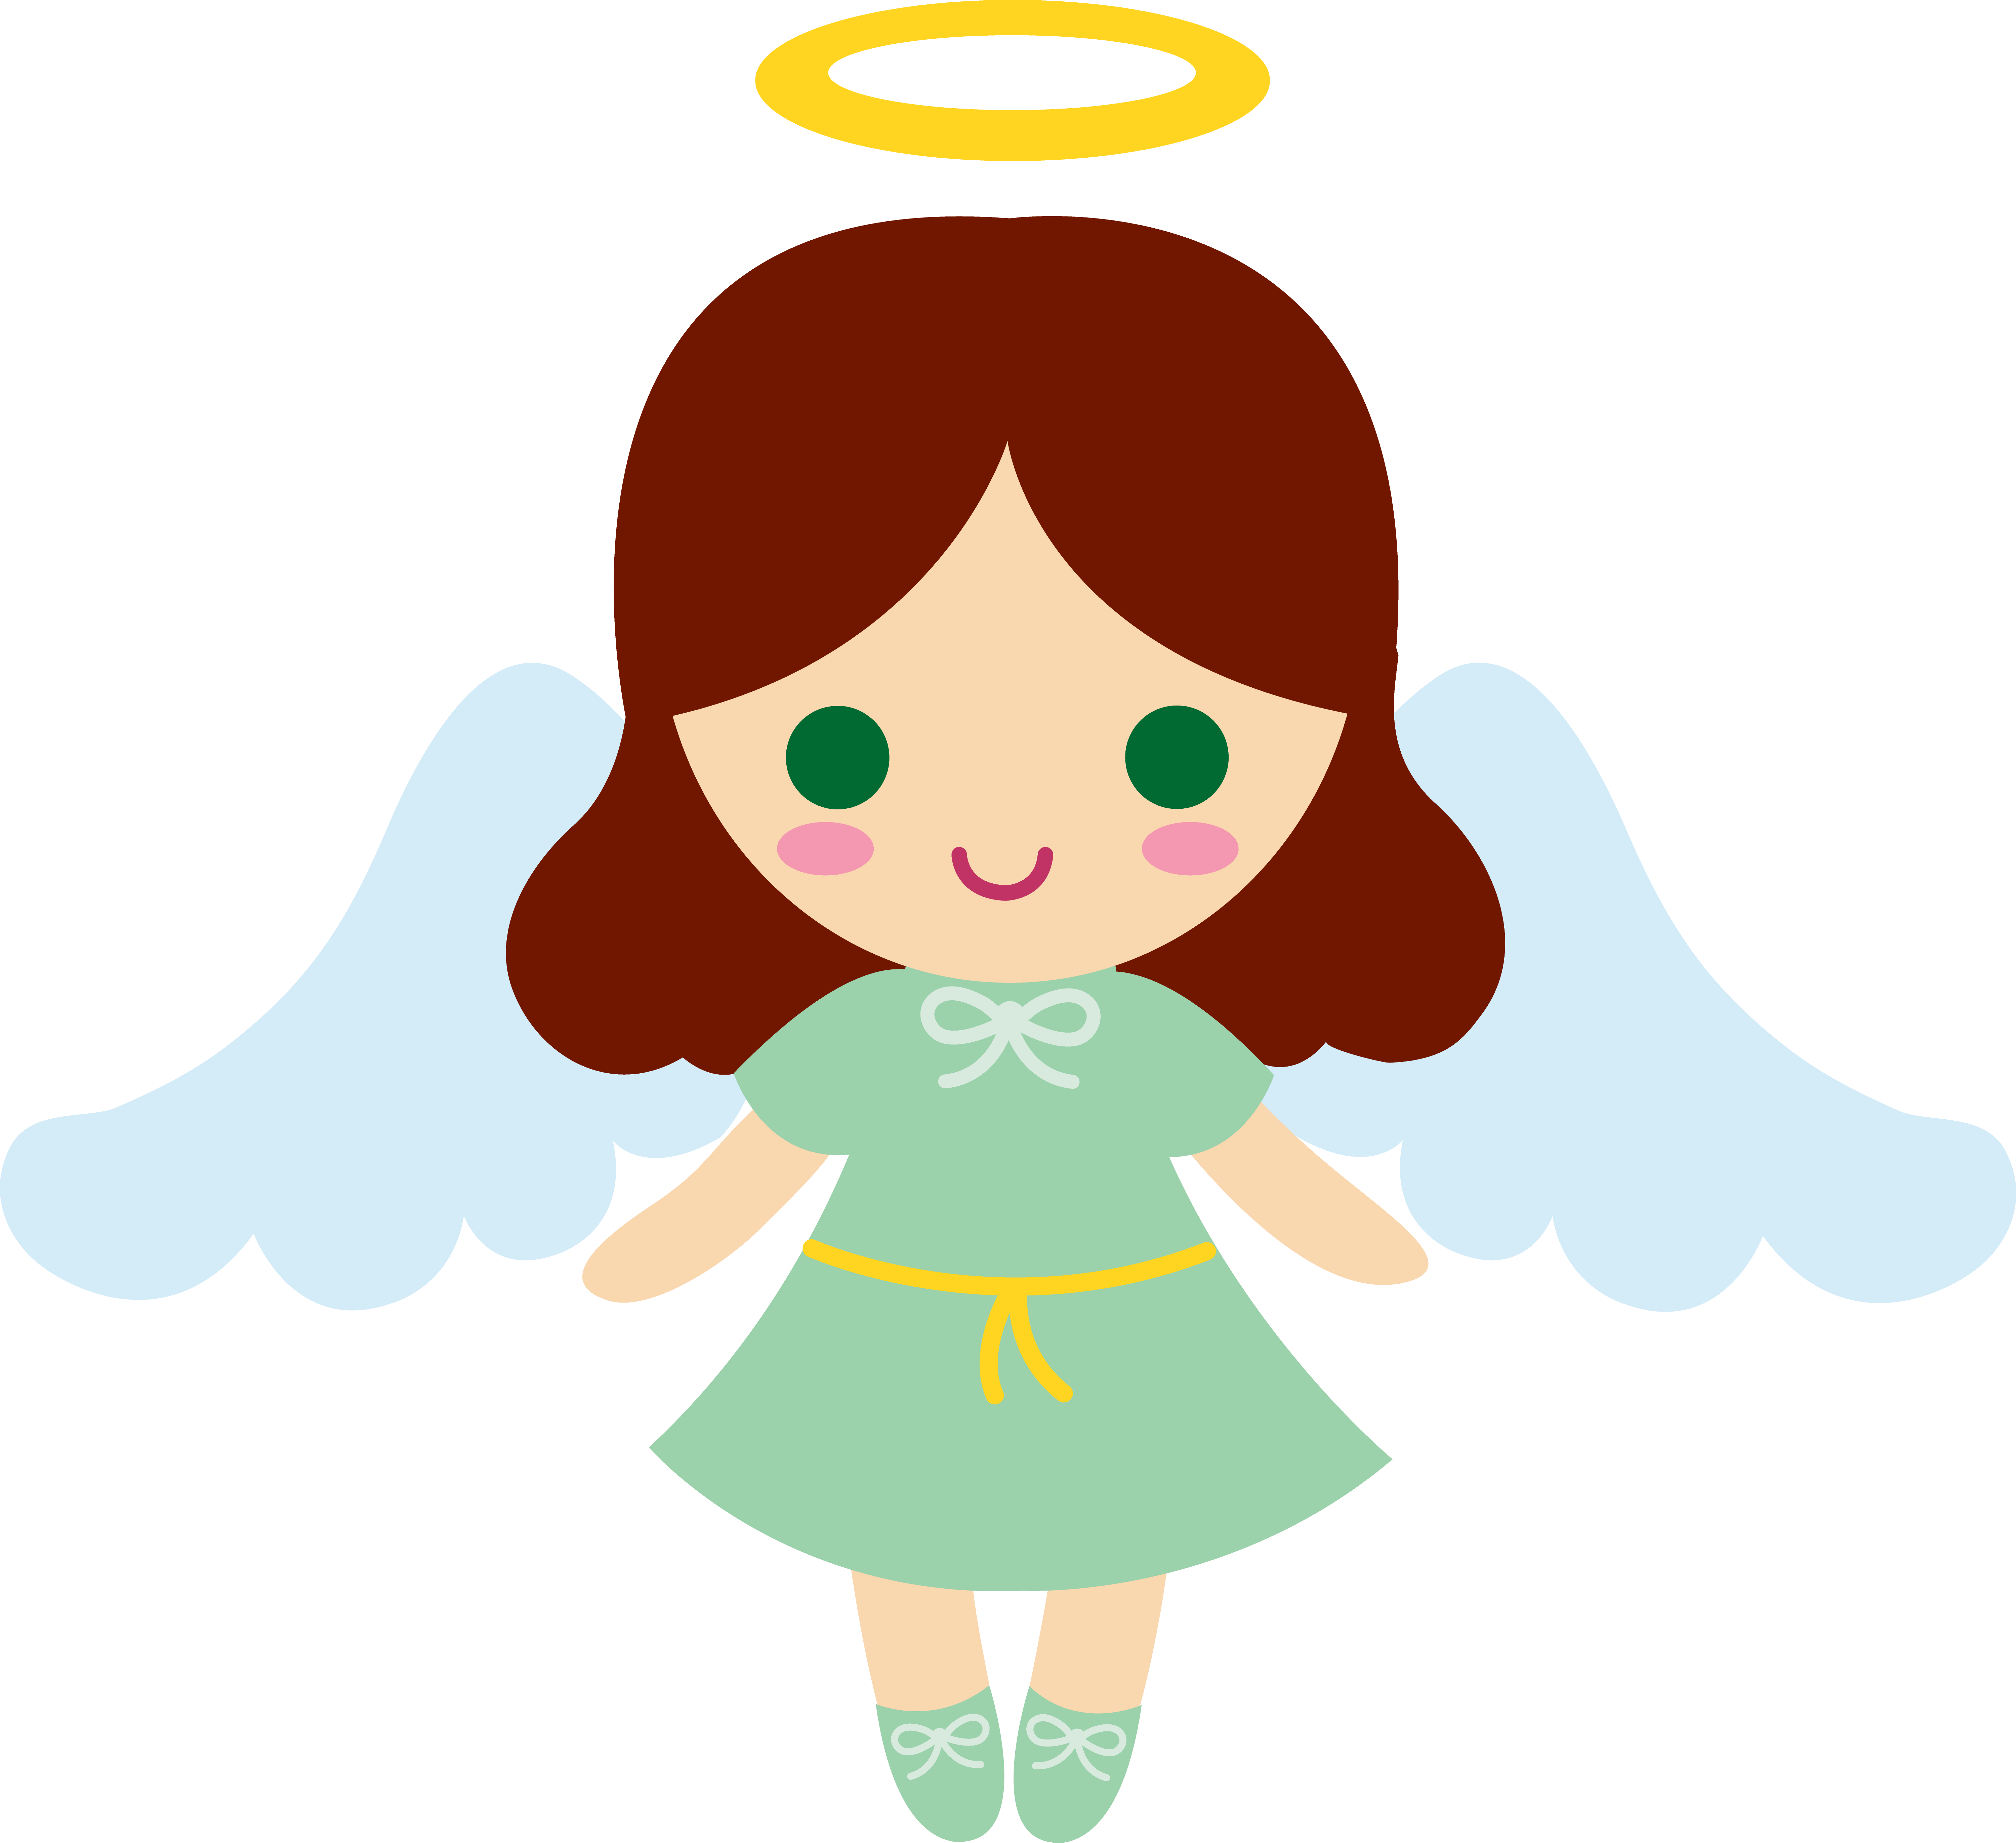 Animated angels clipart clipart royalty free stock Angels Cliparts - Cliparts Zone clipart royalty free stock